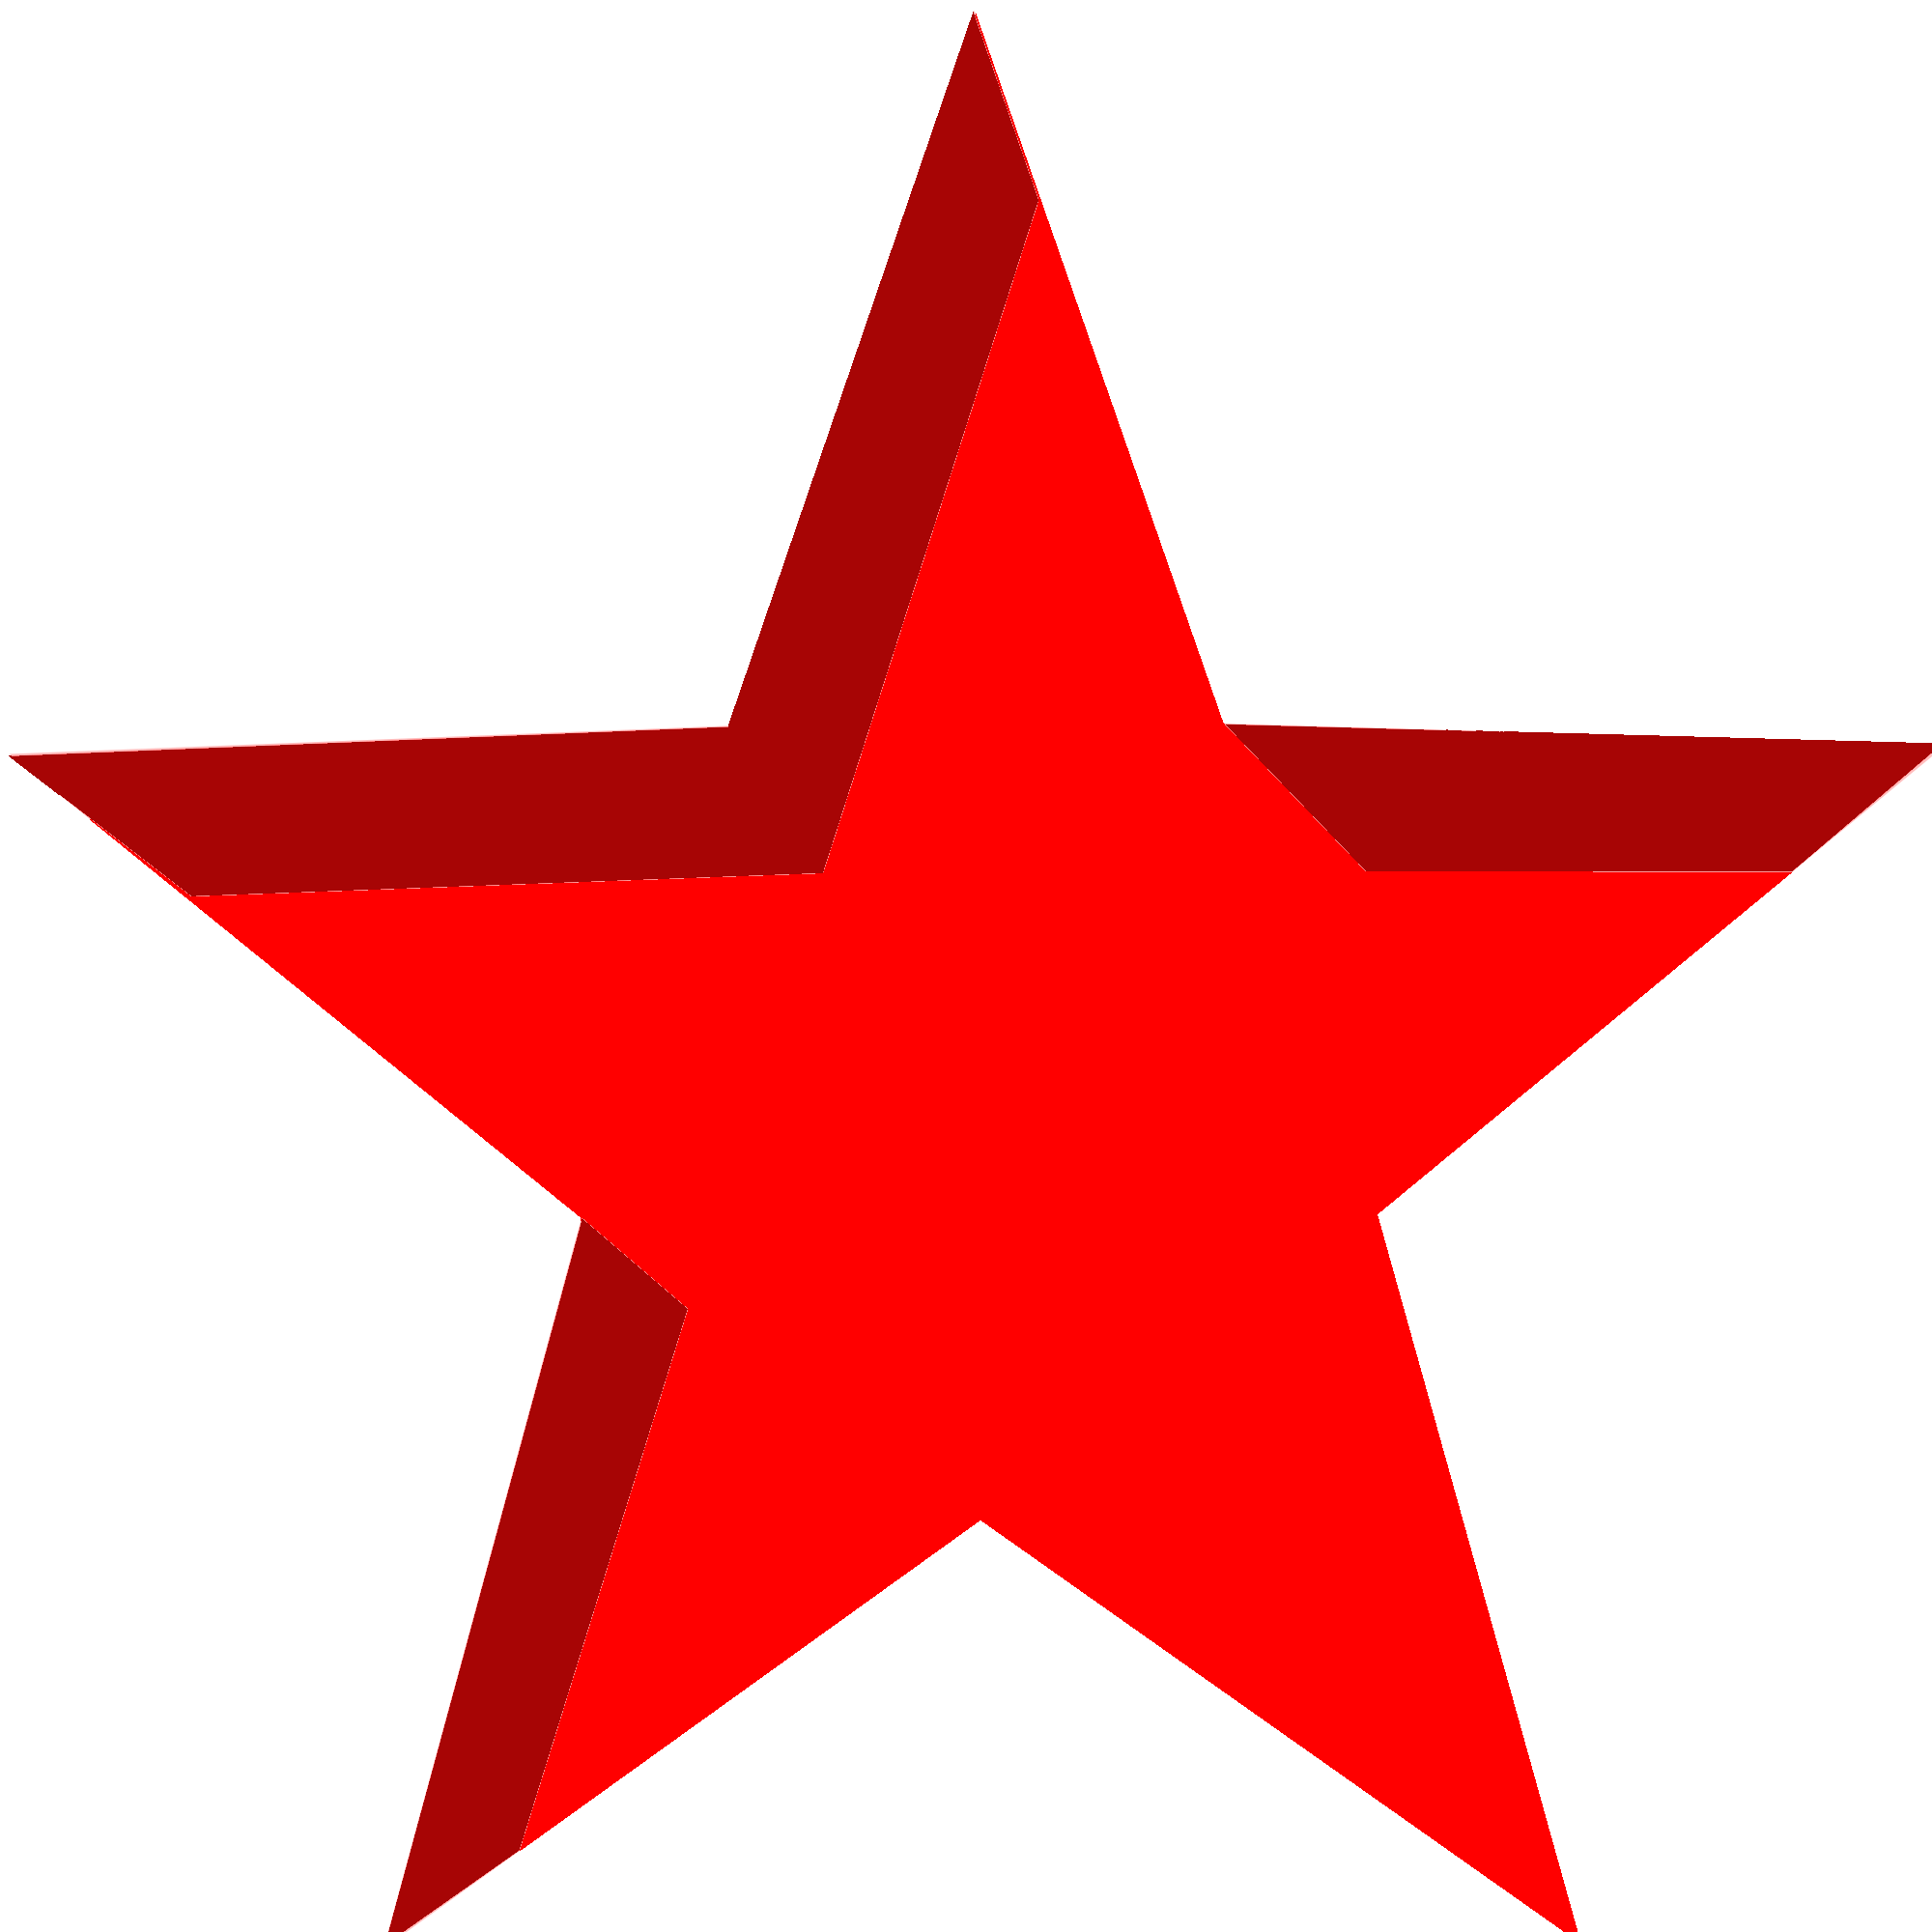 Simple Red Star Png With Alpha banner download